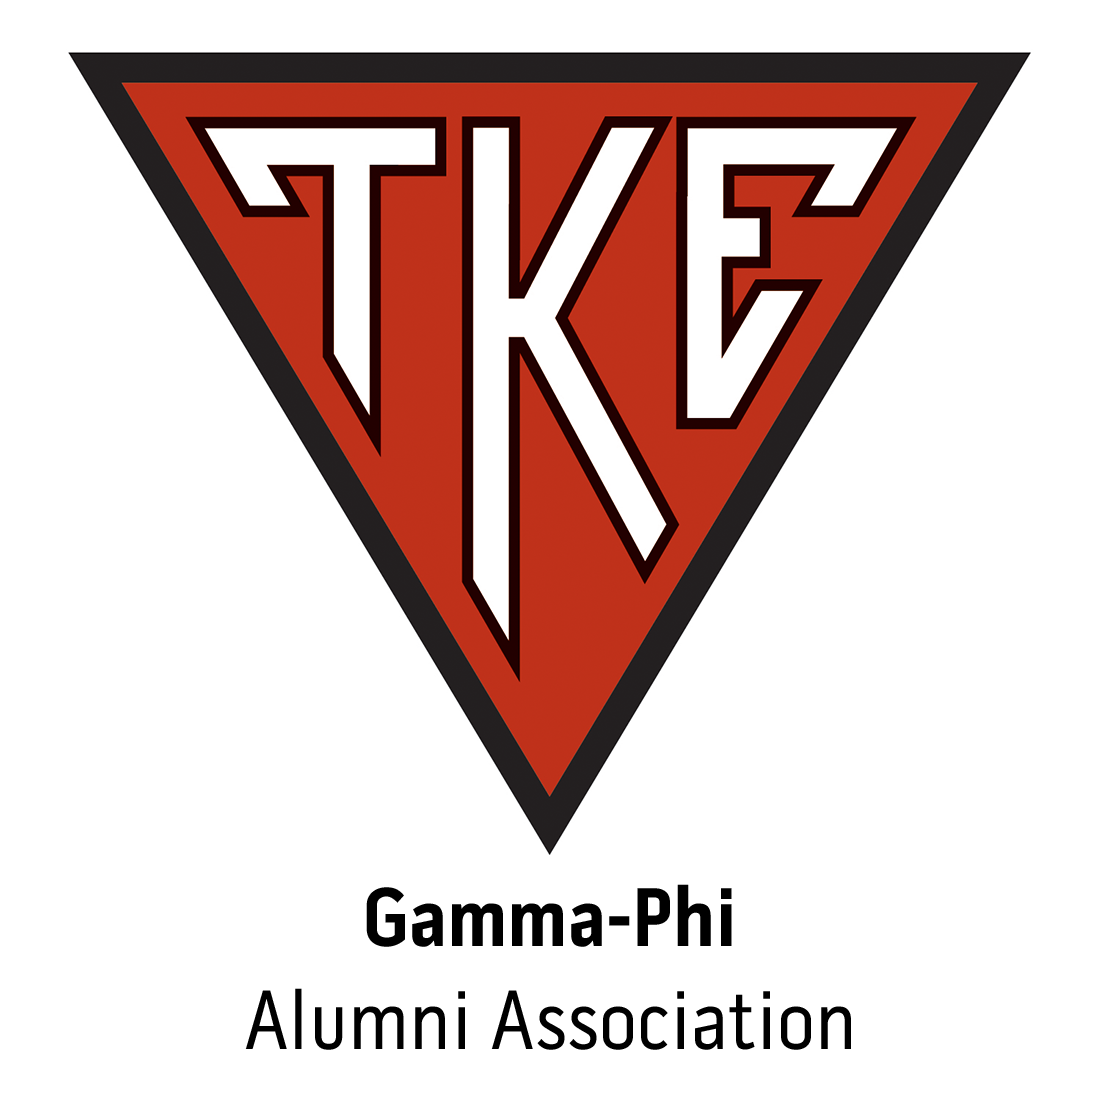 Gamma-Phi Alumni Association at Emporia State University